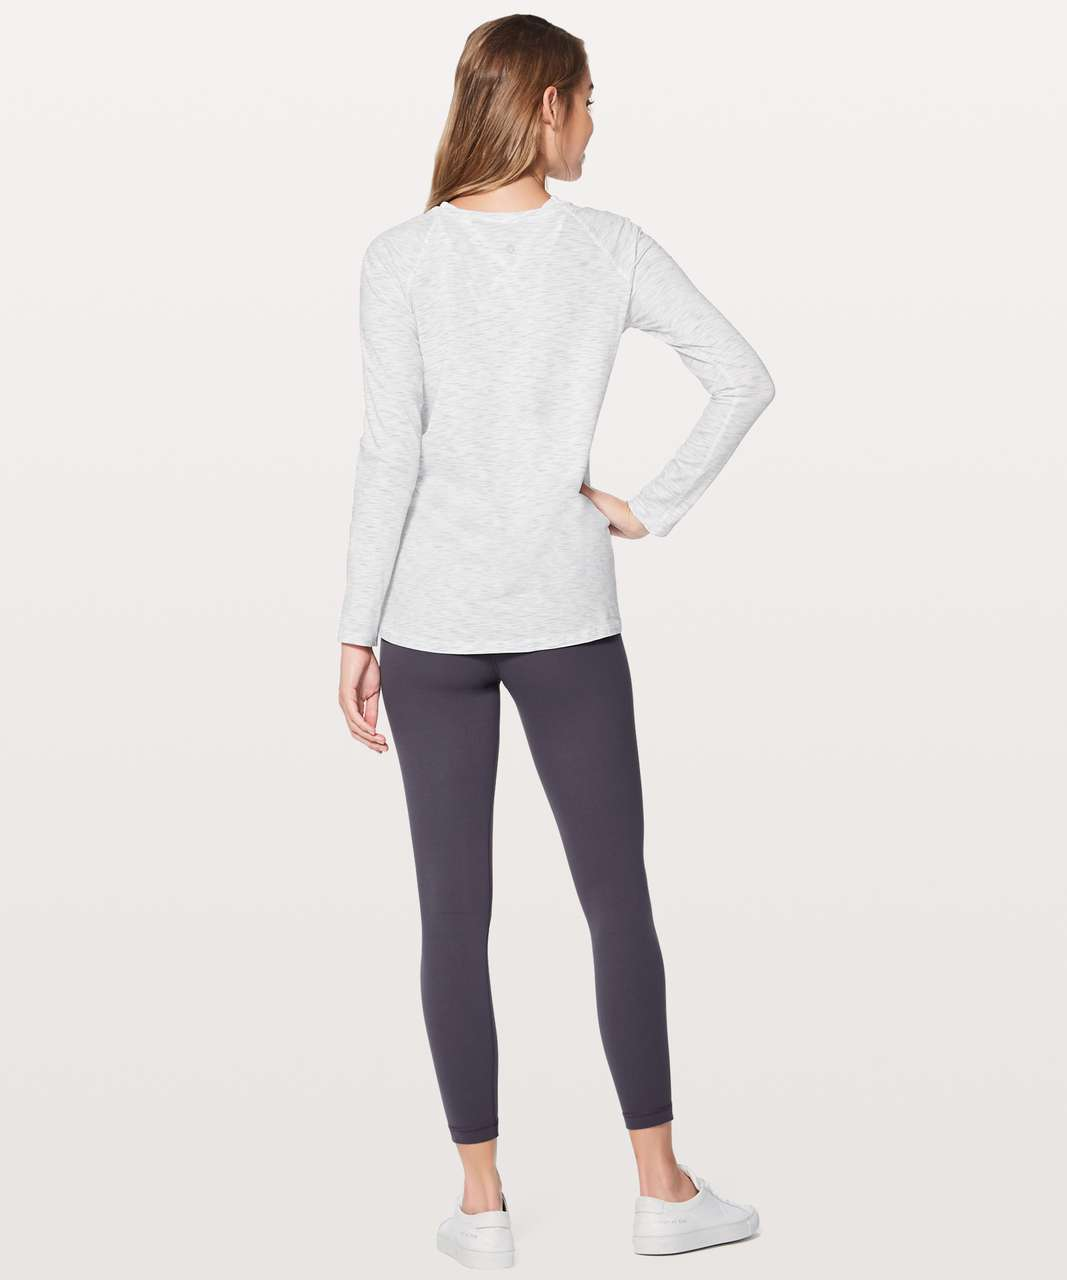 Lululemon Emerald Long Sleeve - 3 Colour Space Dye Ice Grey Alpine White (First Release)